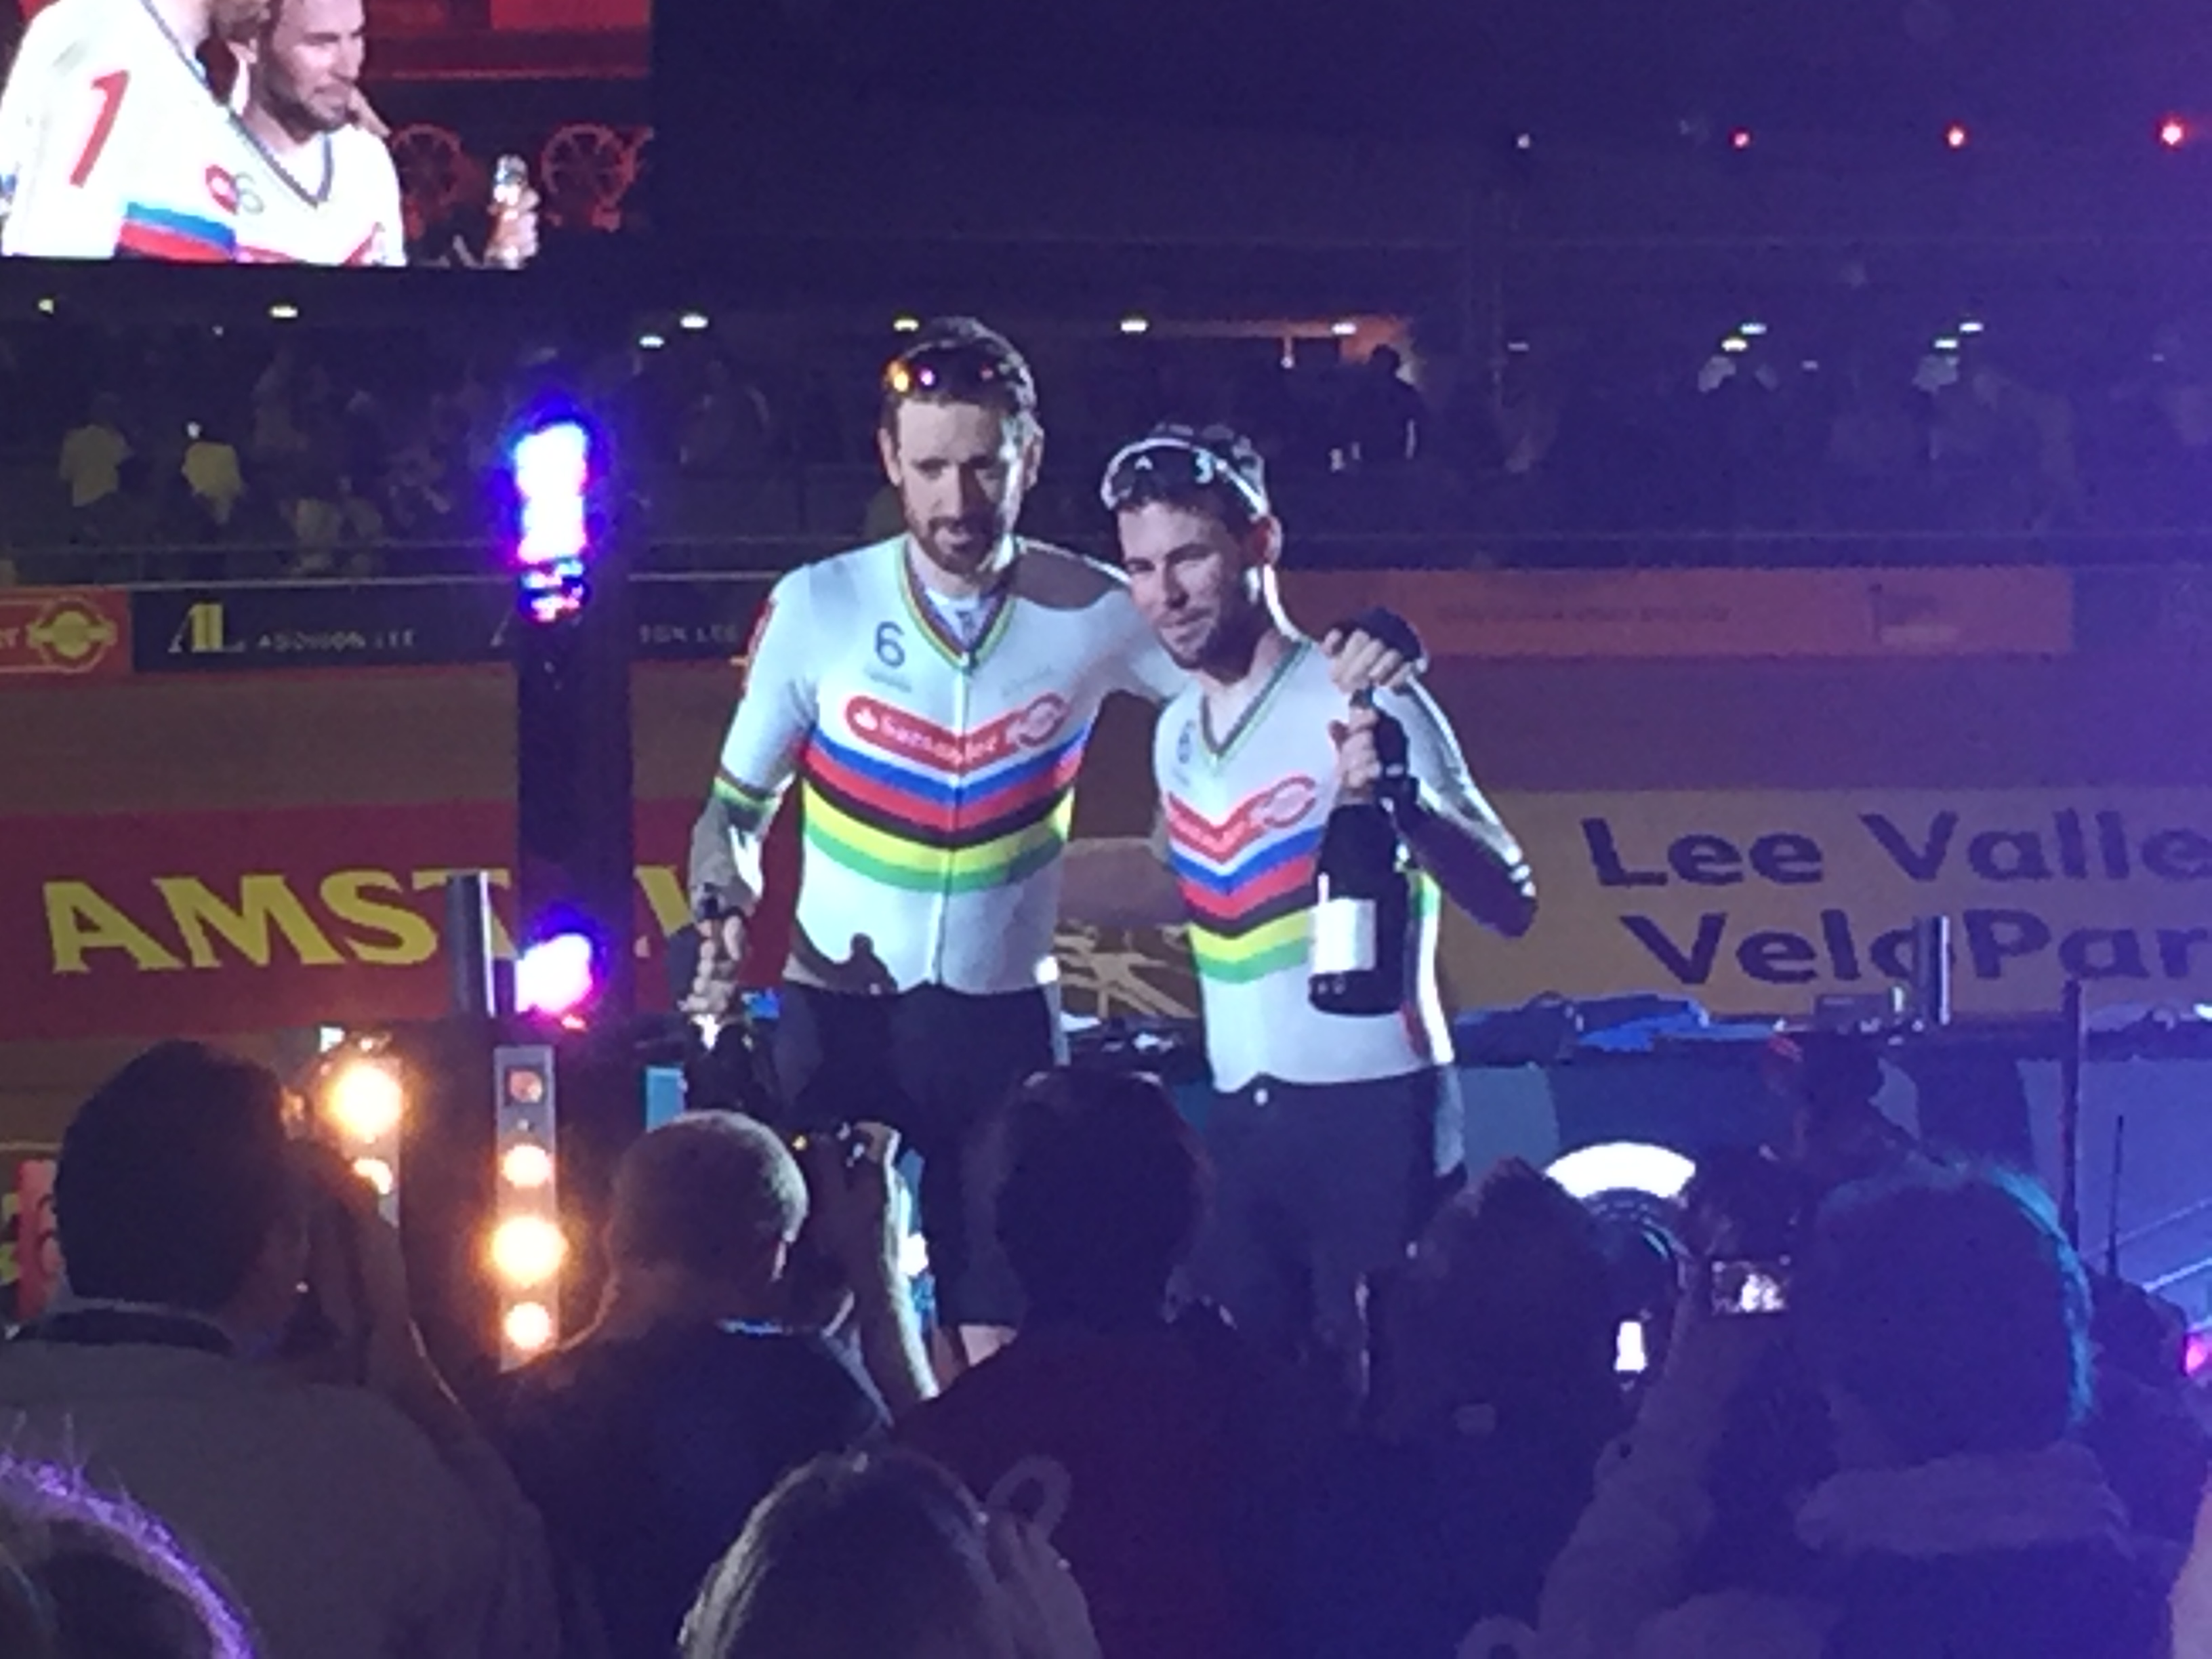 Mark Cavendish and Bradley Wiggins at Six Day Racing